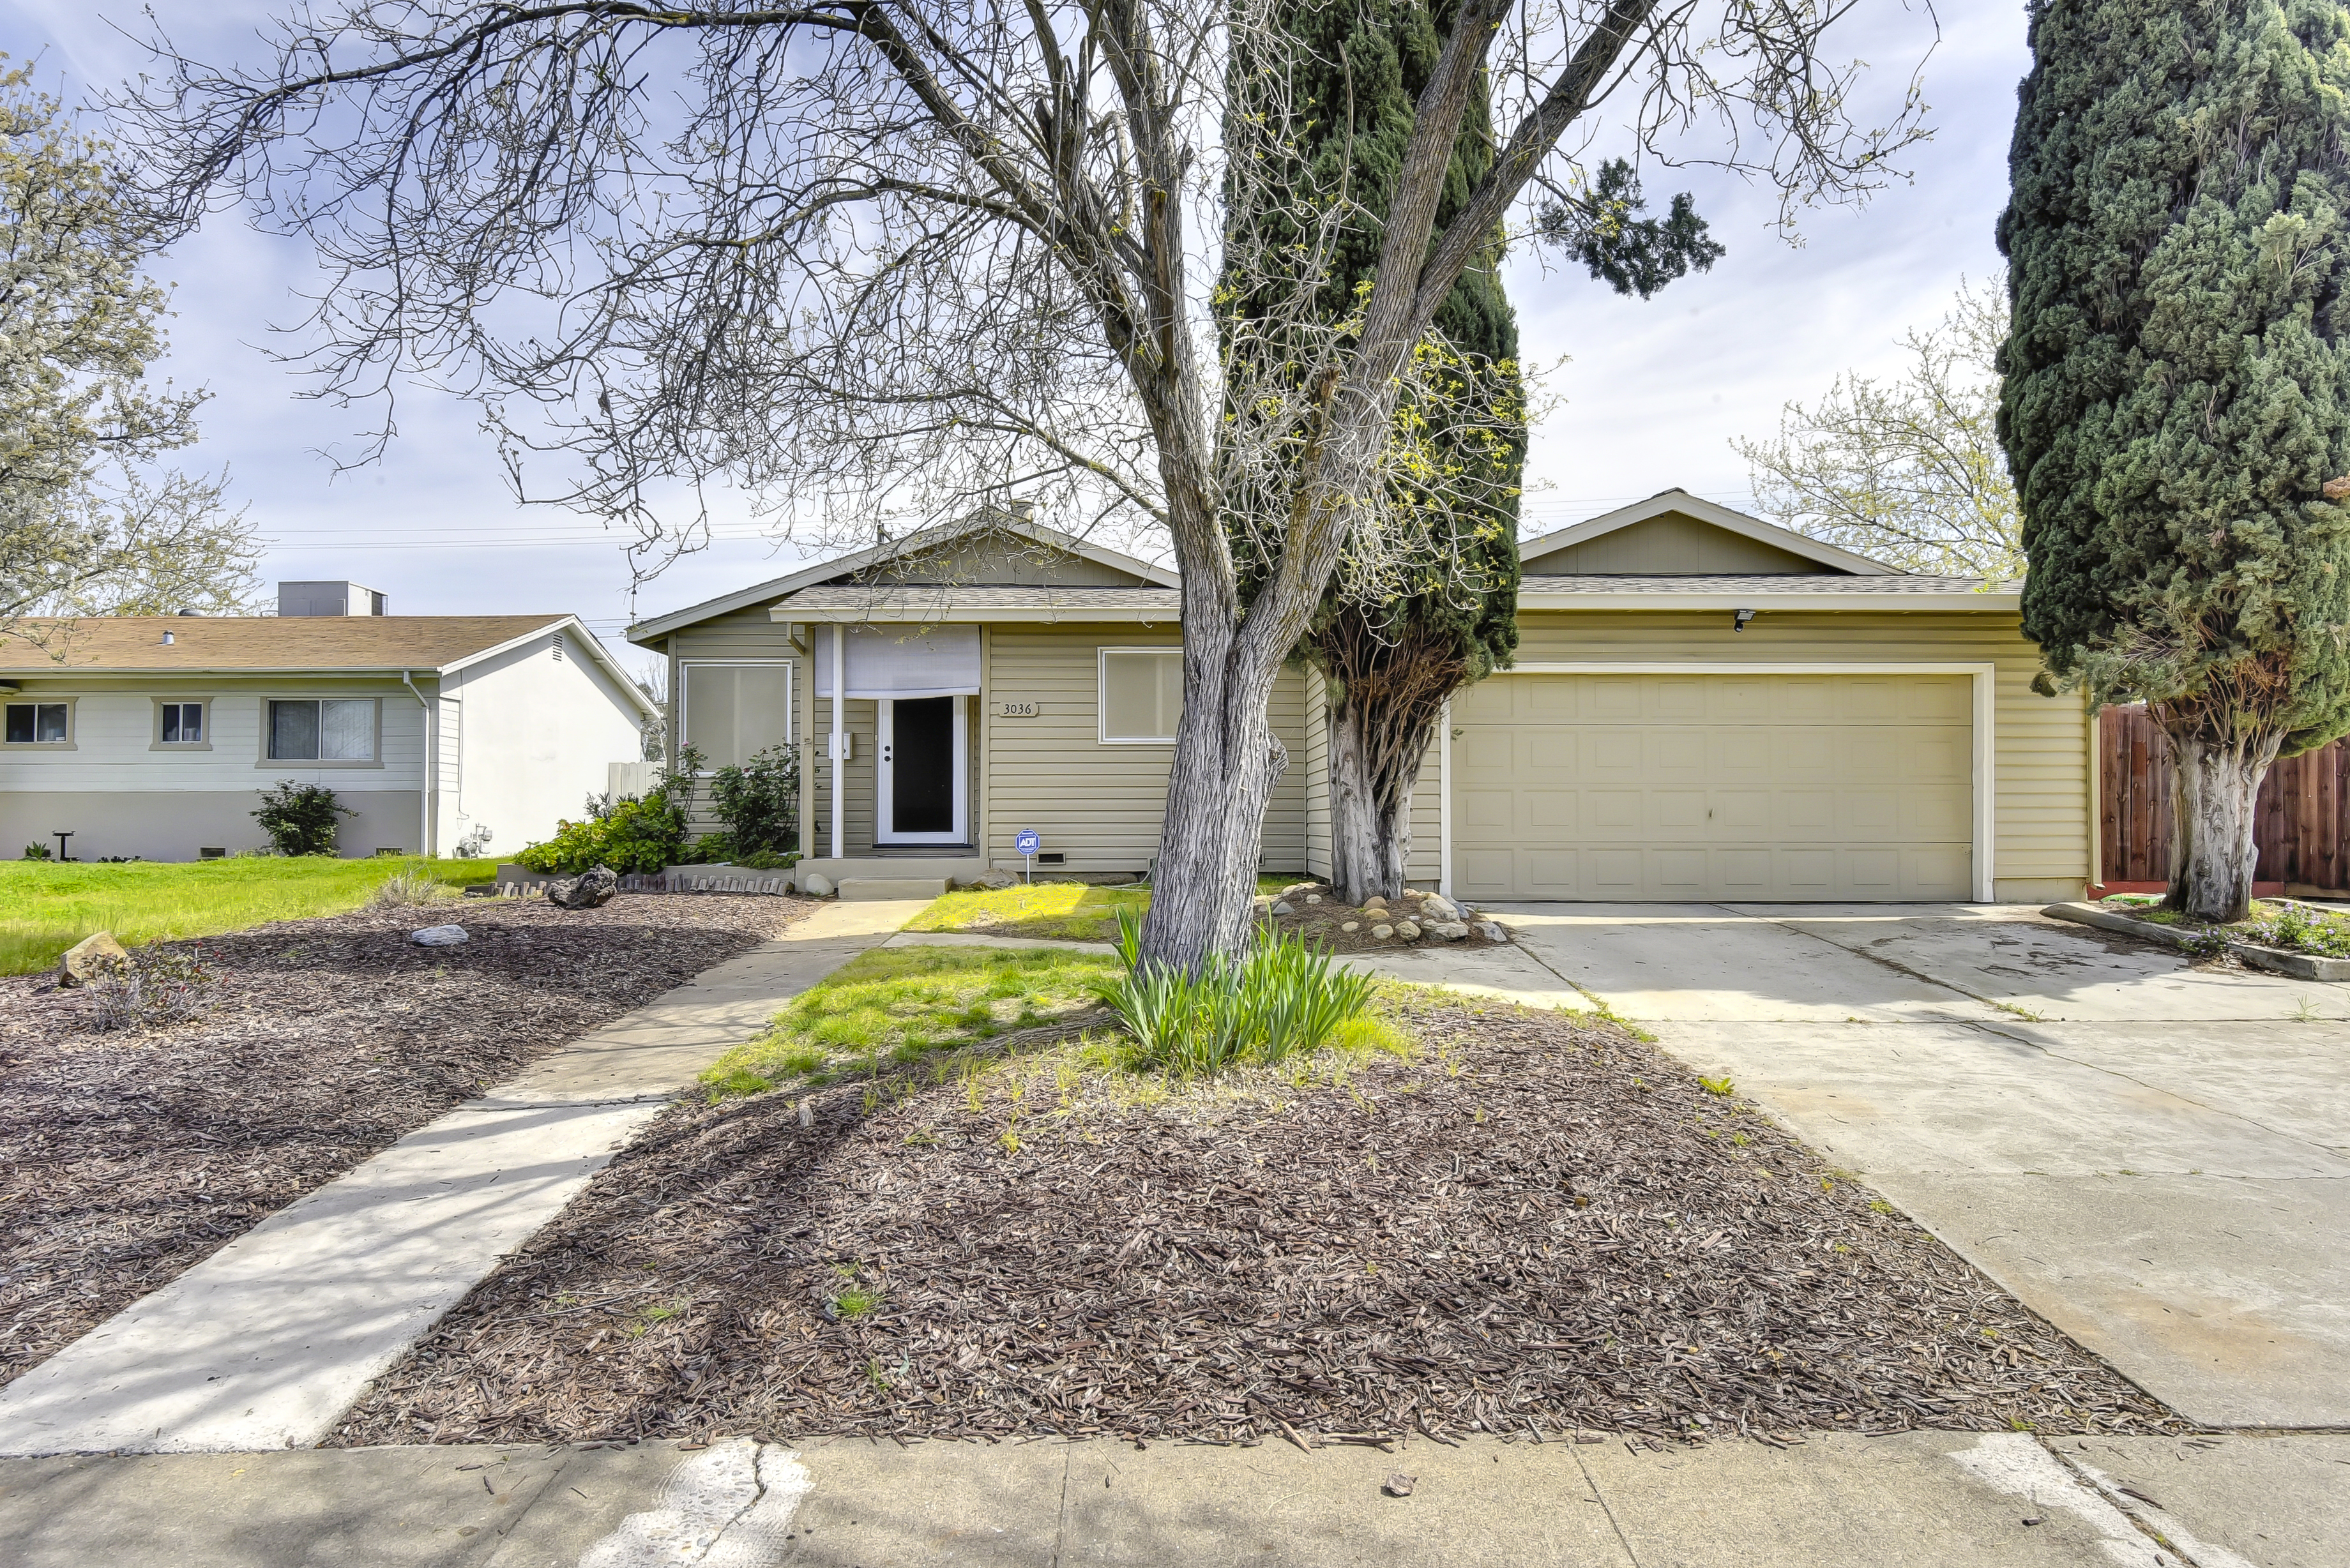 3036 Swansea Way, Rancho Cordova, CA 95670